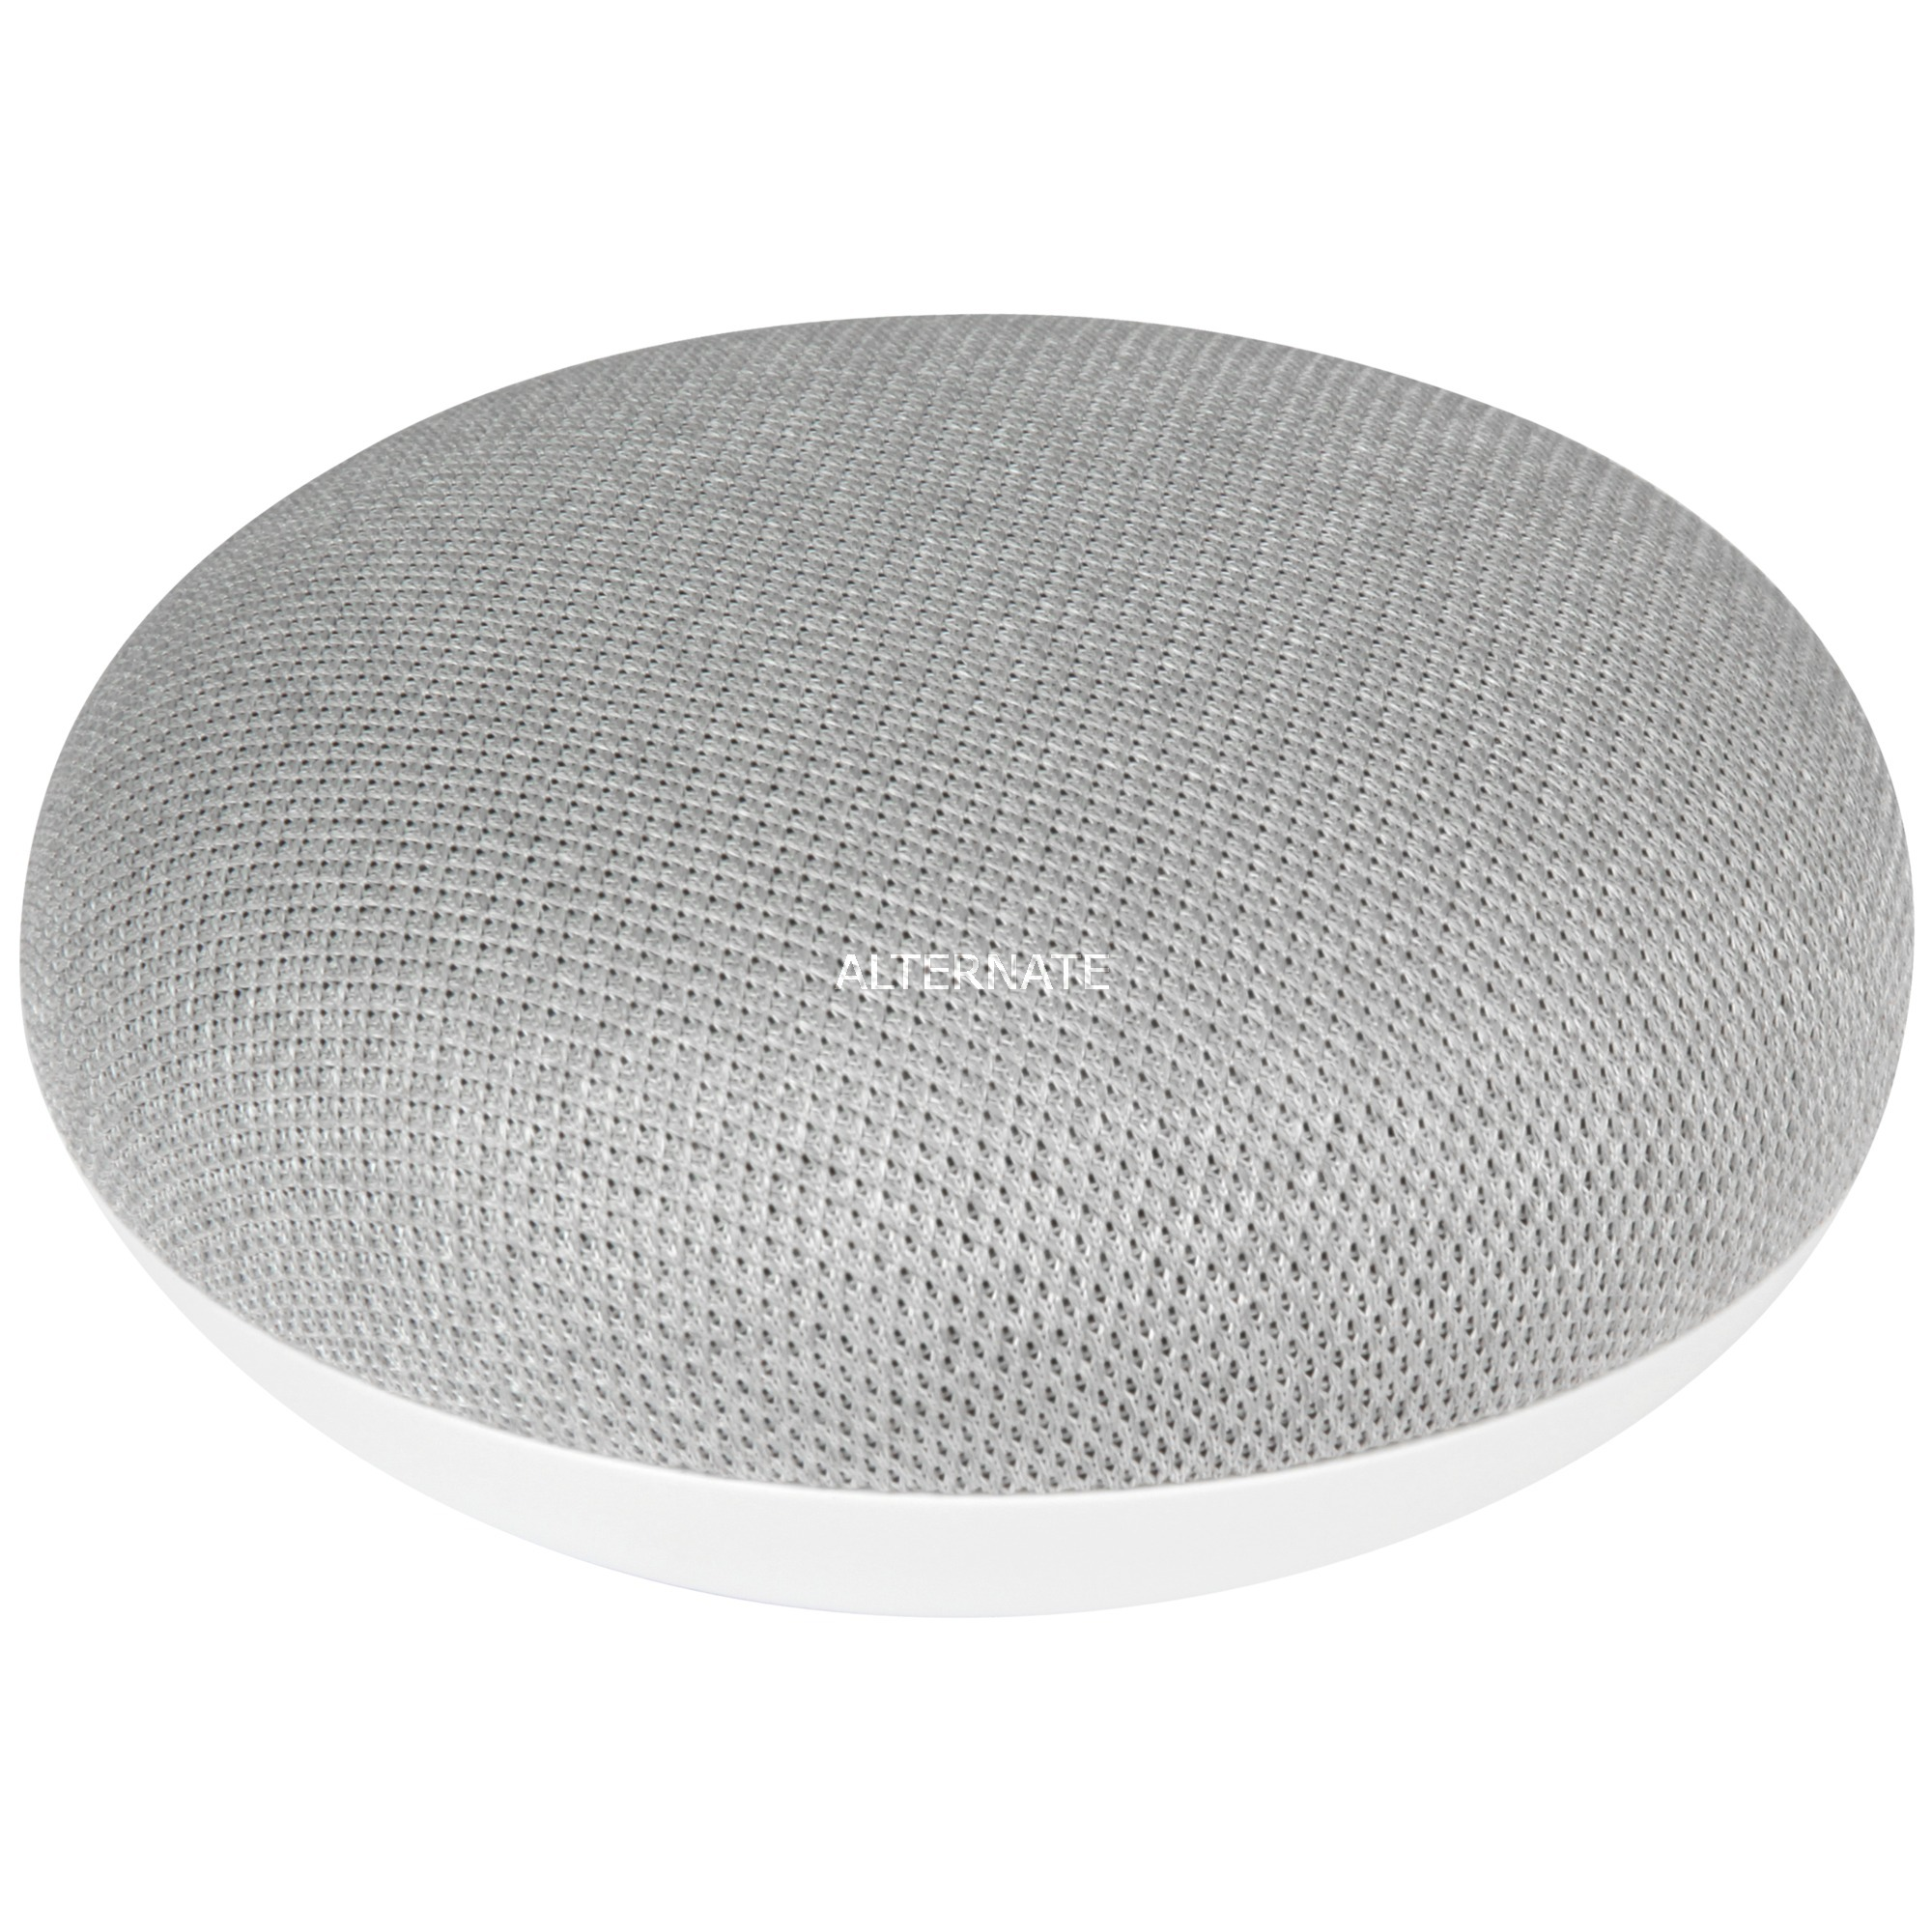 Home Mini Gris, Altavoz